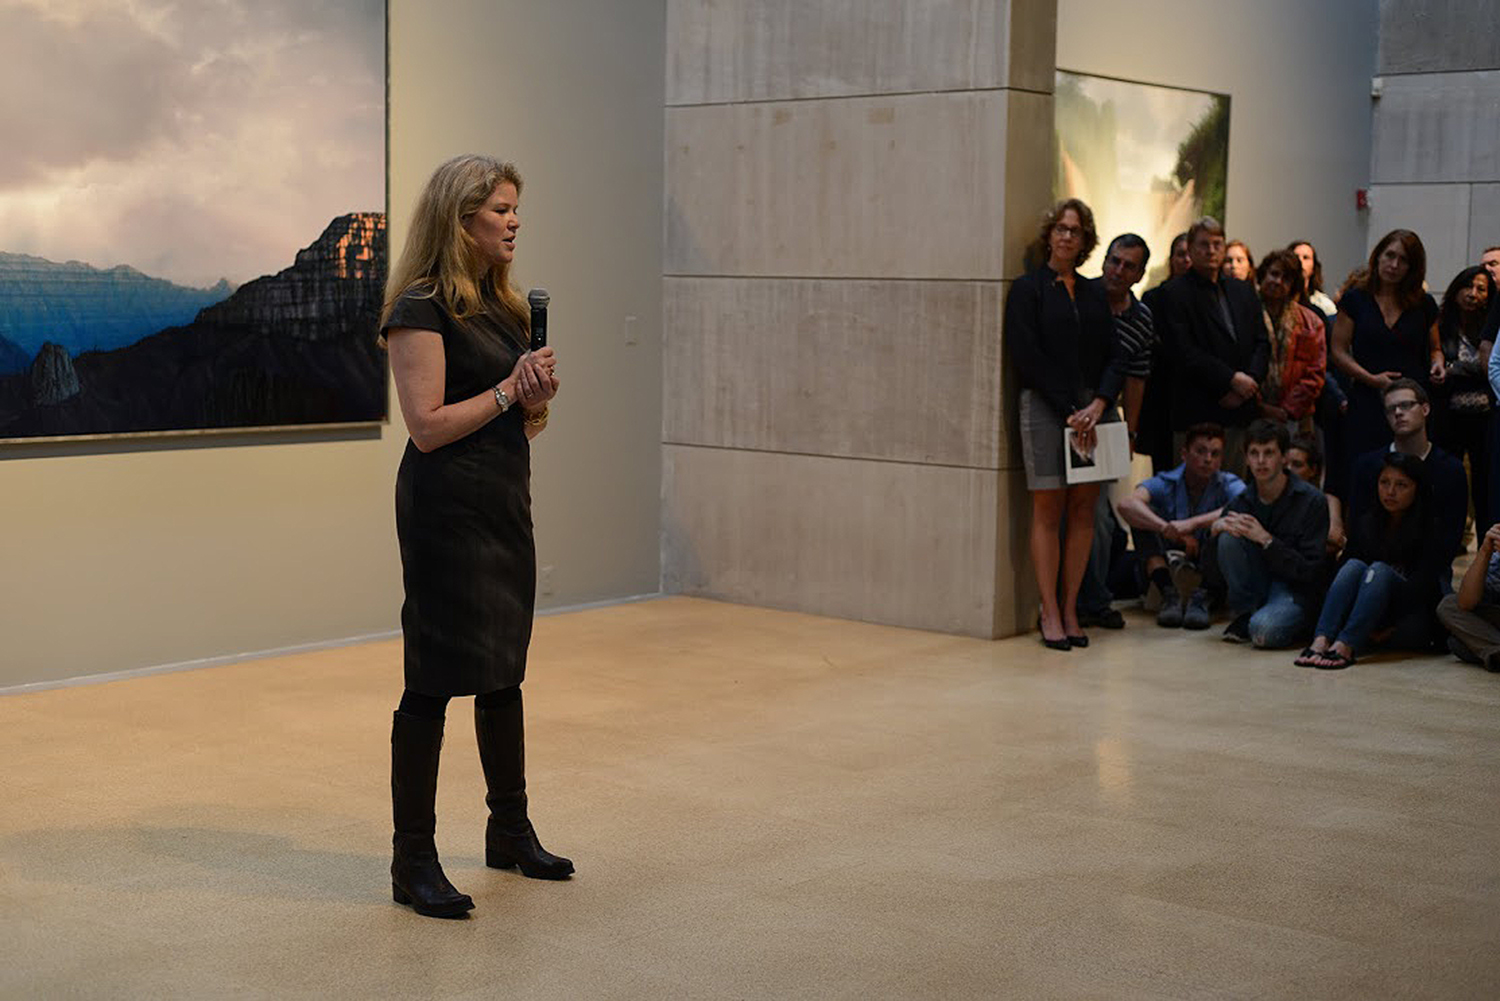 On Sept. 16, Professor of Art Tula Telfair spoke about her new landscape paintings which are on display through Dec. 7 in the Ezra and Cecile Zilkha Gallery.